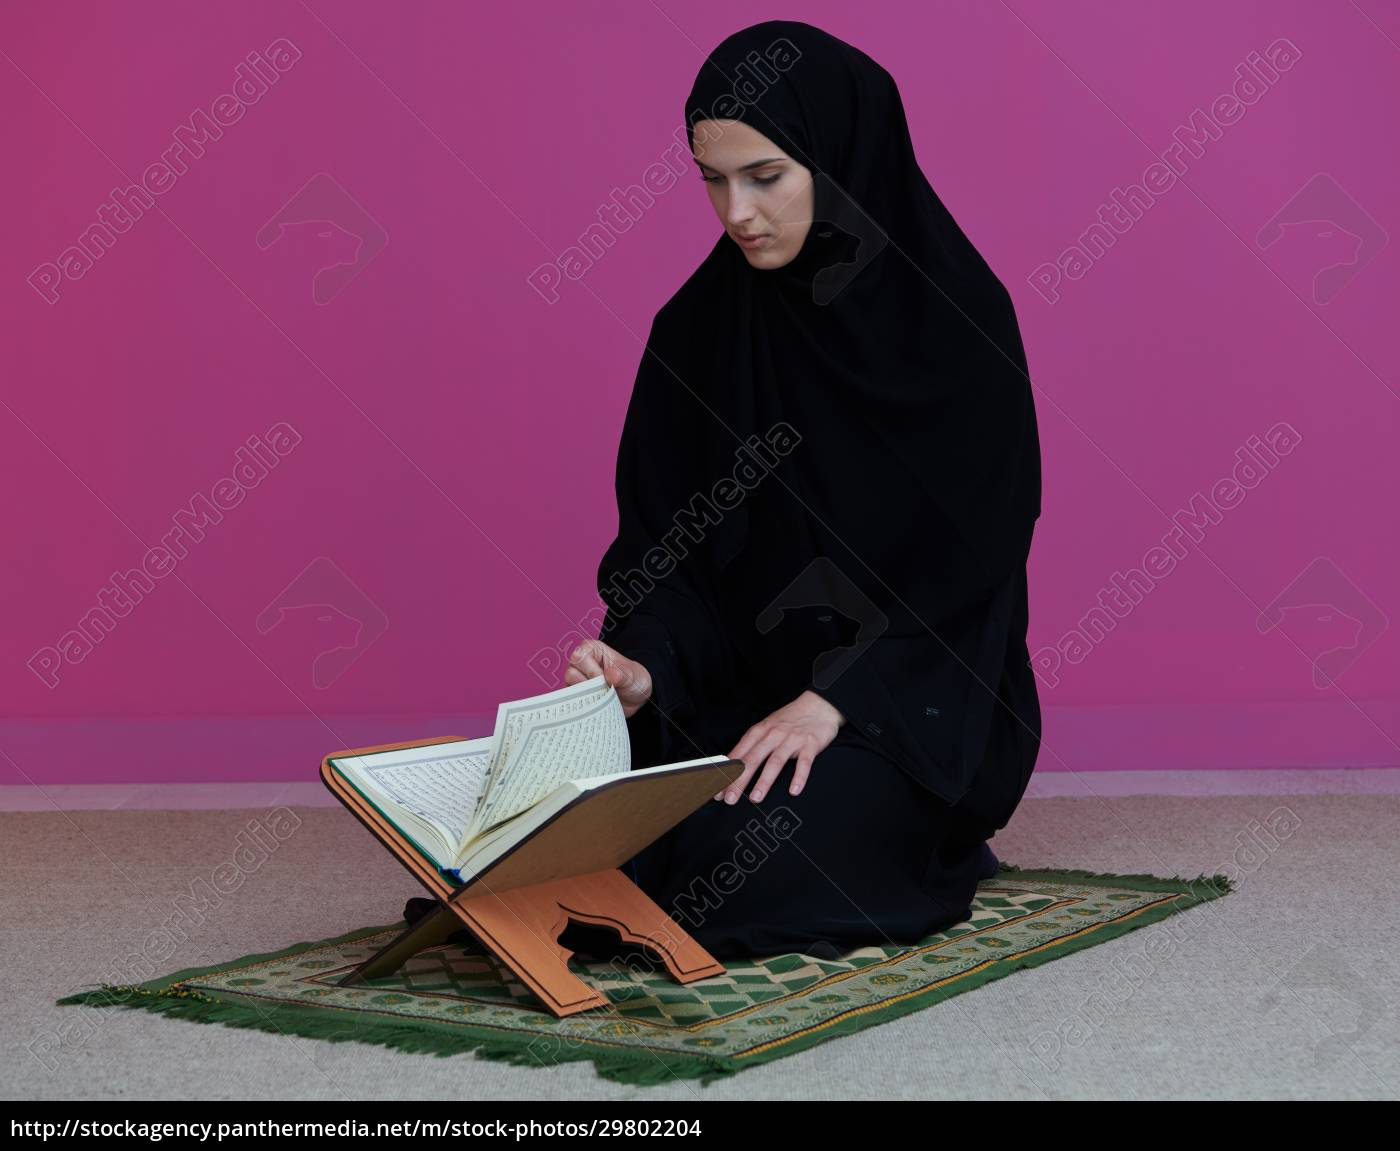 middle, eastern, woman, praying, and, reading - 29802204